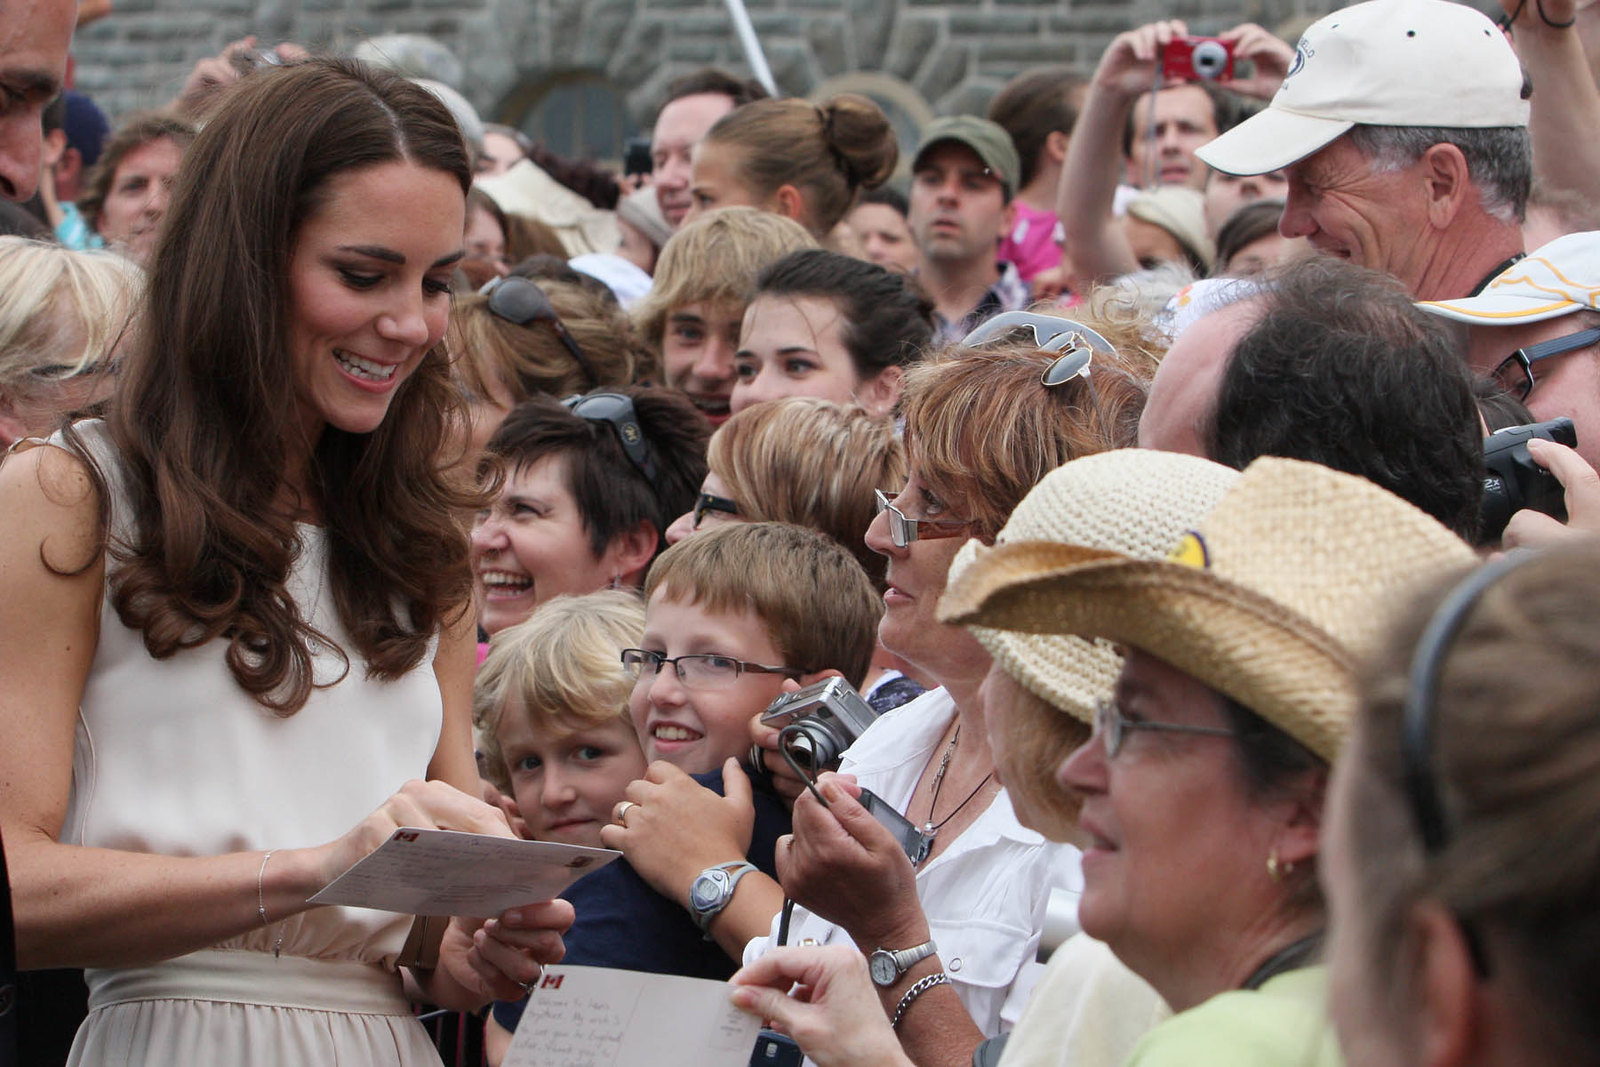 The Duchess of Cambridge met with the members of the public during the walkabout in Charlottetown